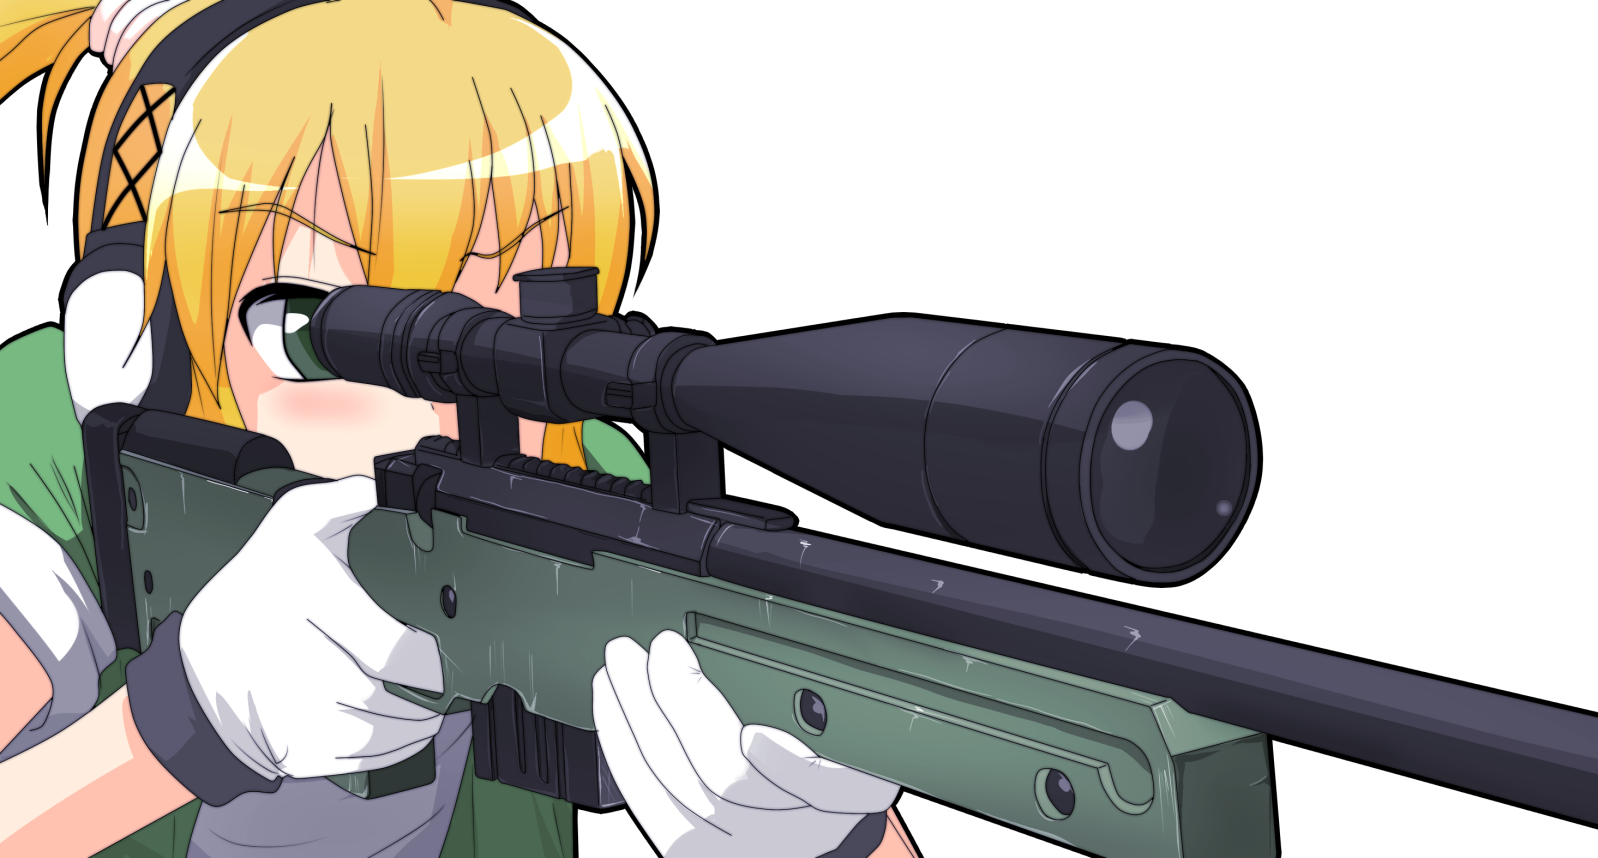 Anime sniper png. Image material limmie s